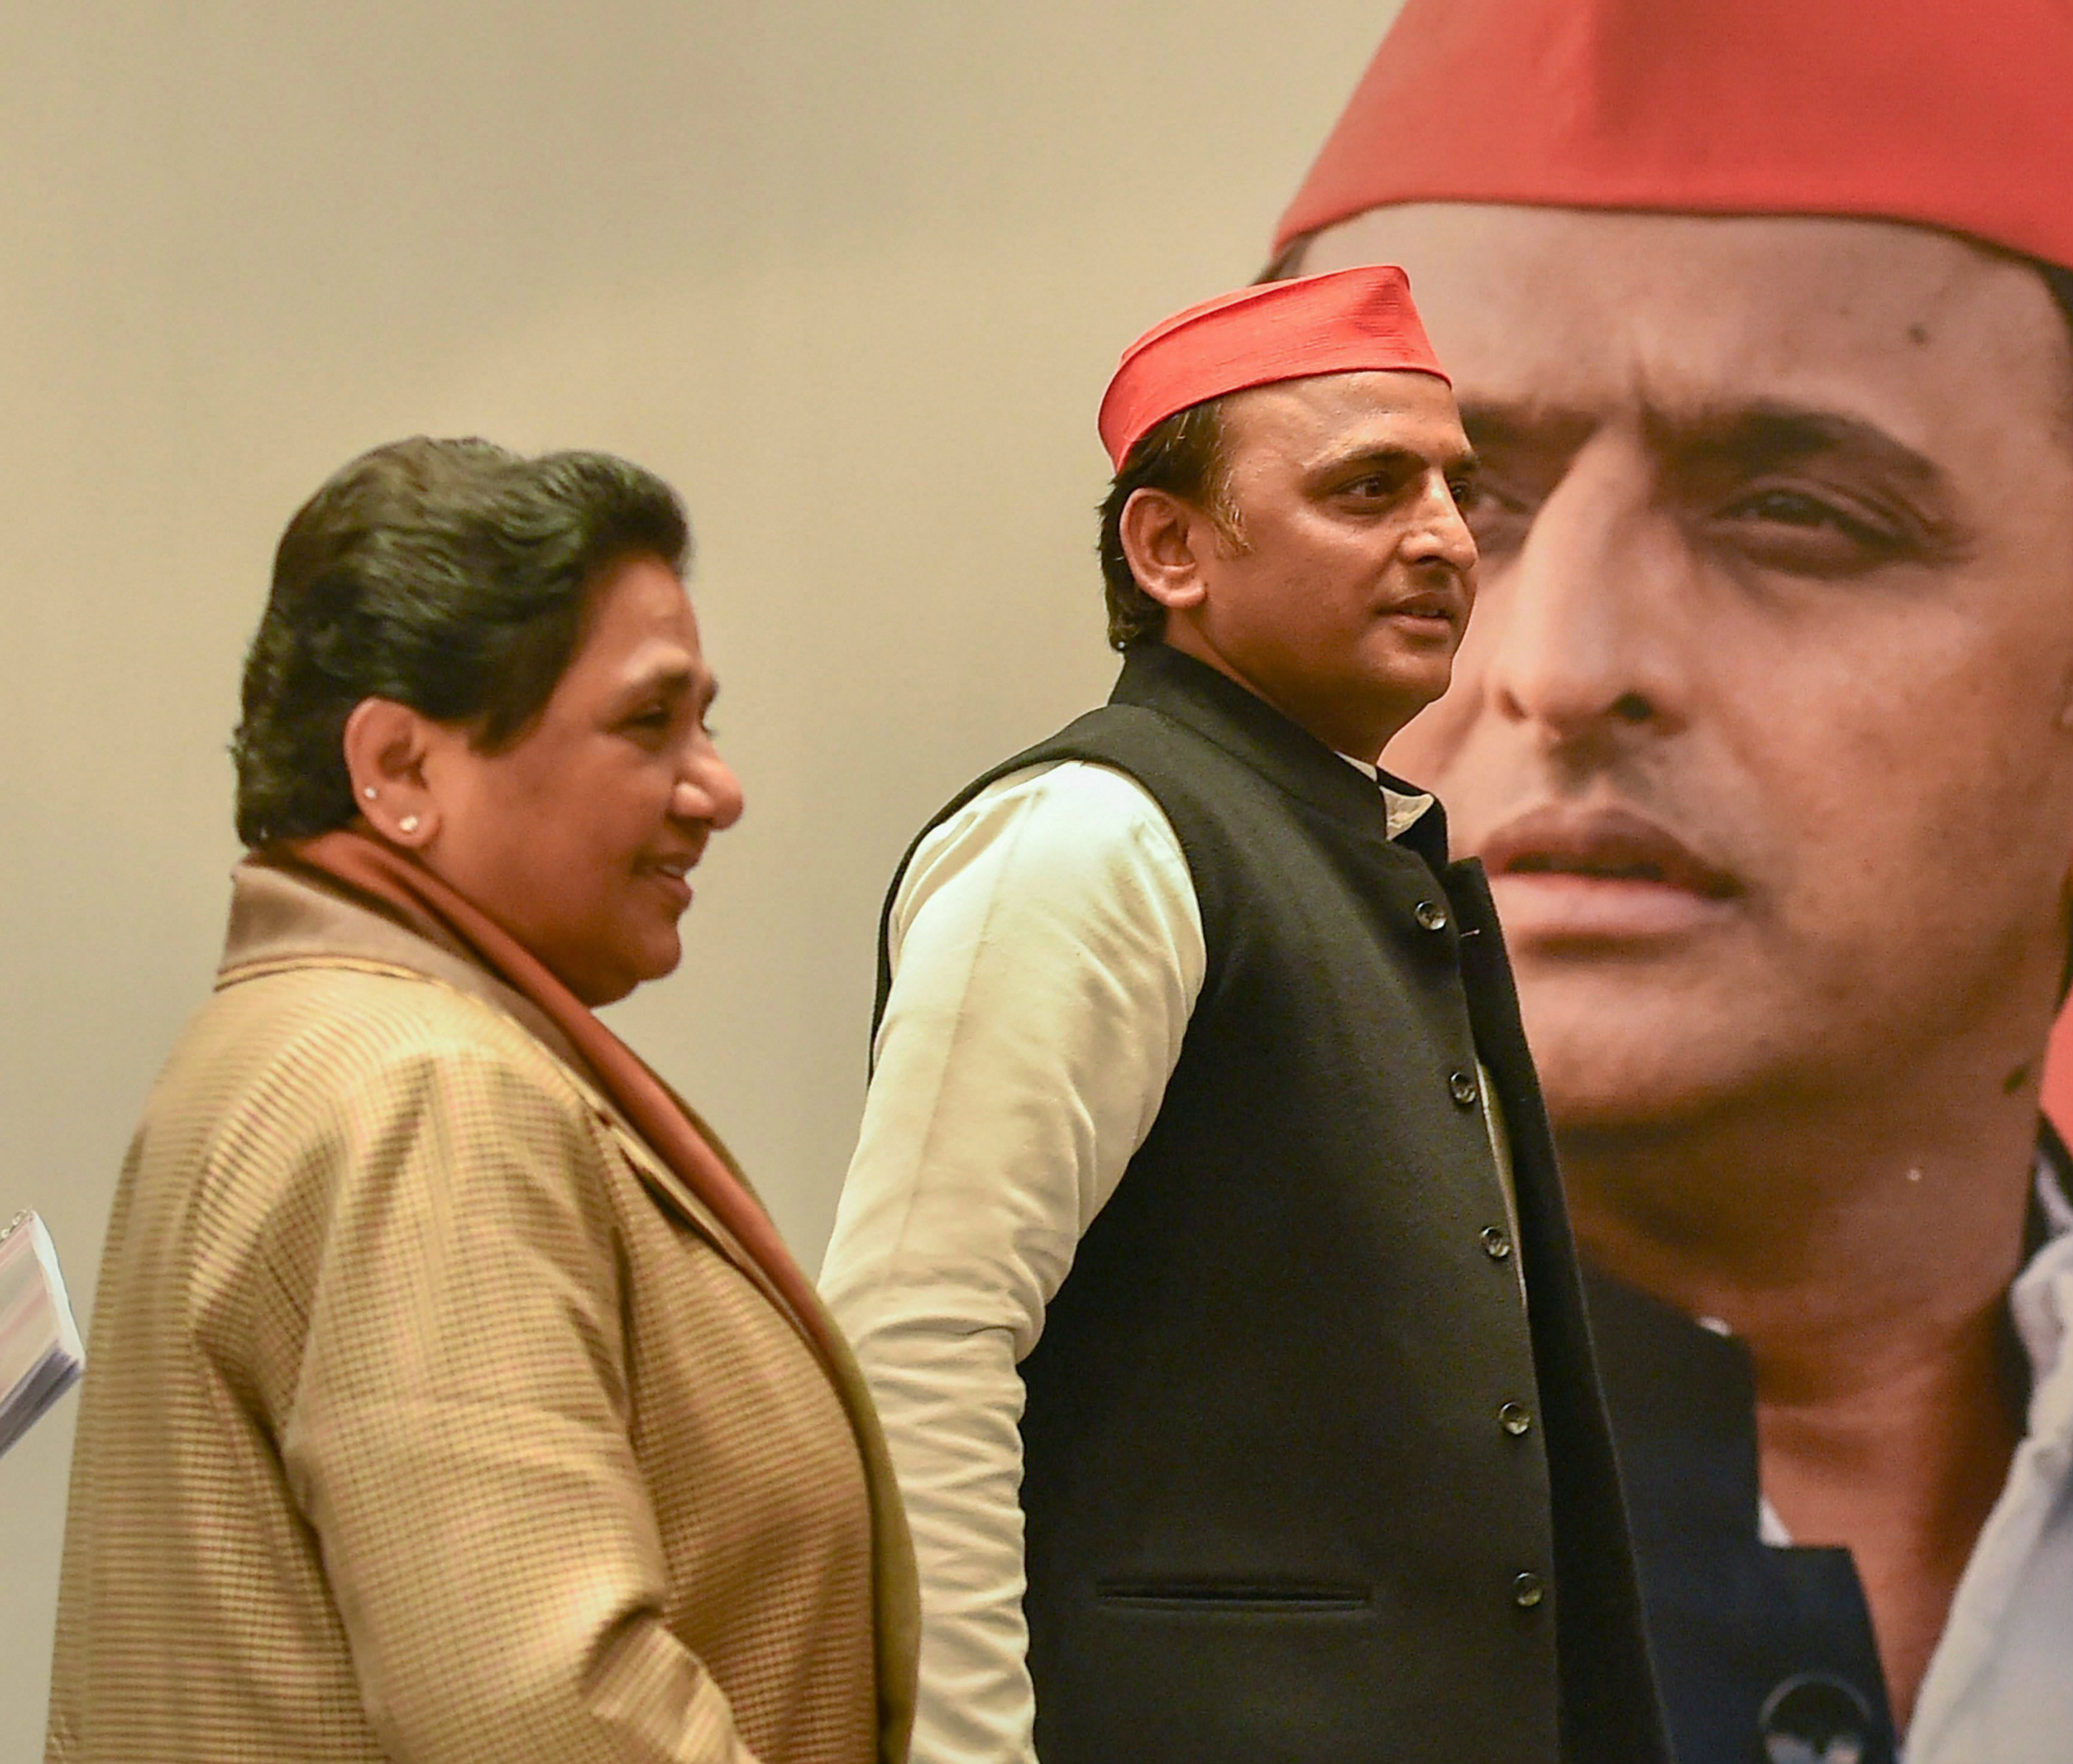 BSP chief Mayawati and Samajwadi Party president Akhilesh Yadav during a joint press conference in Lucknow on Saturday.